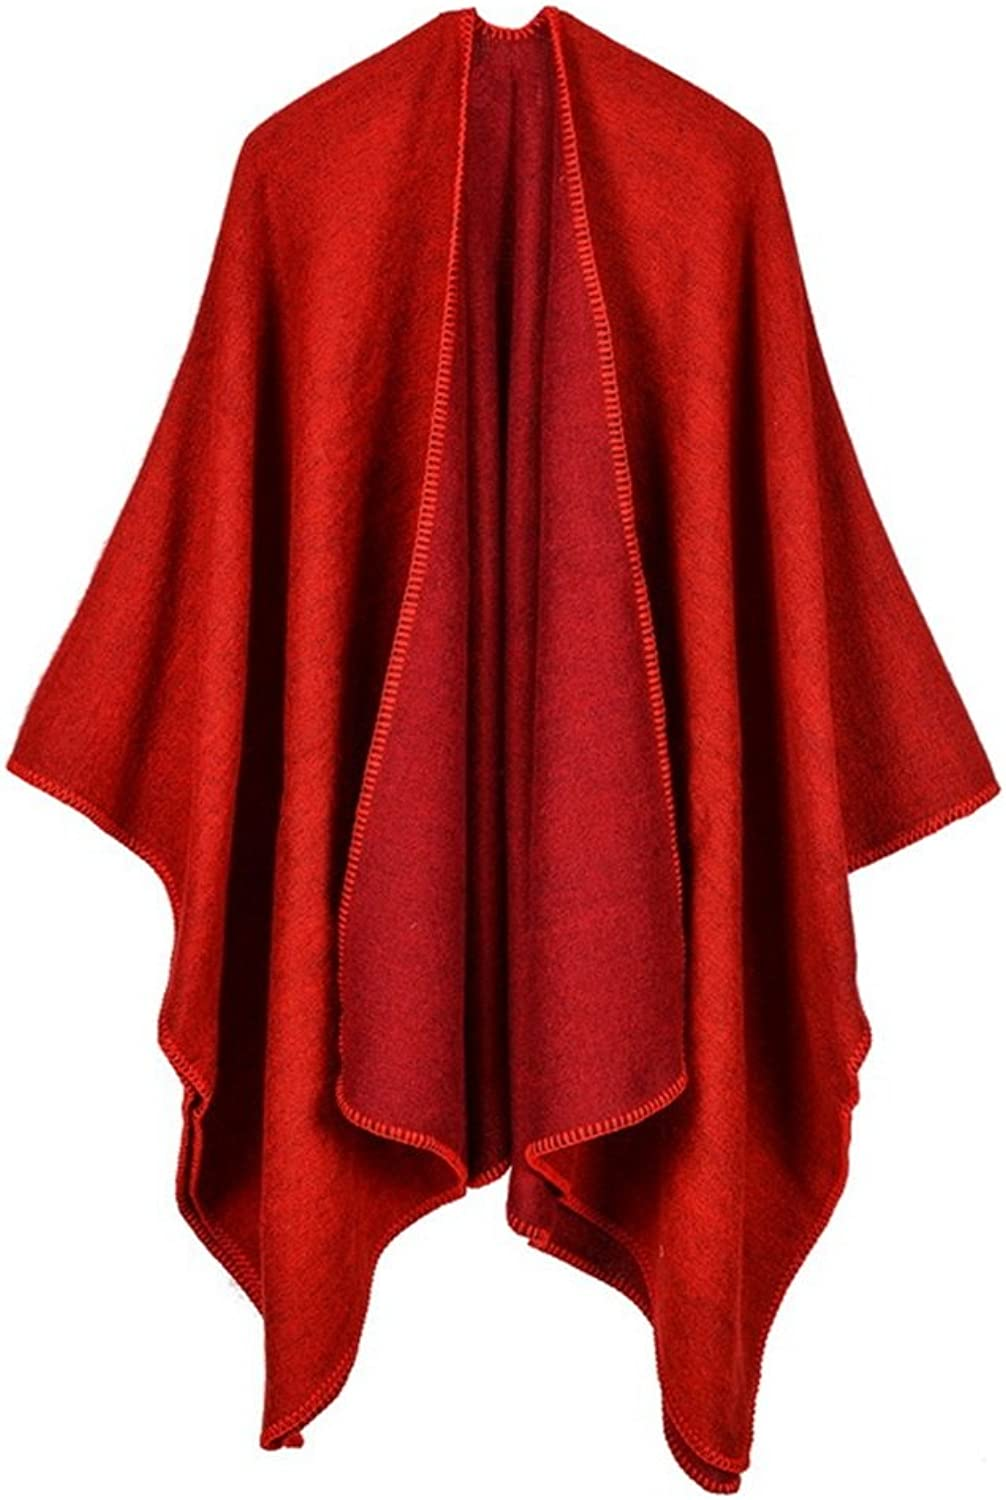 Lady's Shawl- Womens Shawl Solid color Vintage Pashmina Wrap Scarf Knitwear Tops Cloak Cape Poncho Spring And Autumn Perfect Gift 130  150CM Decoration ( color   Red1 )